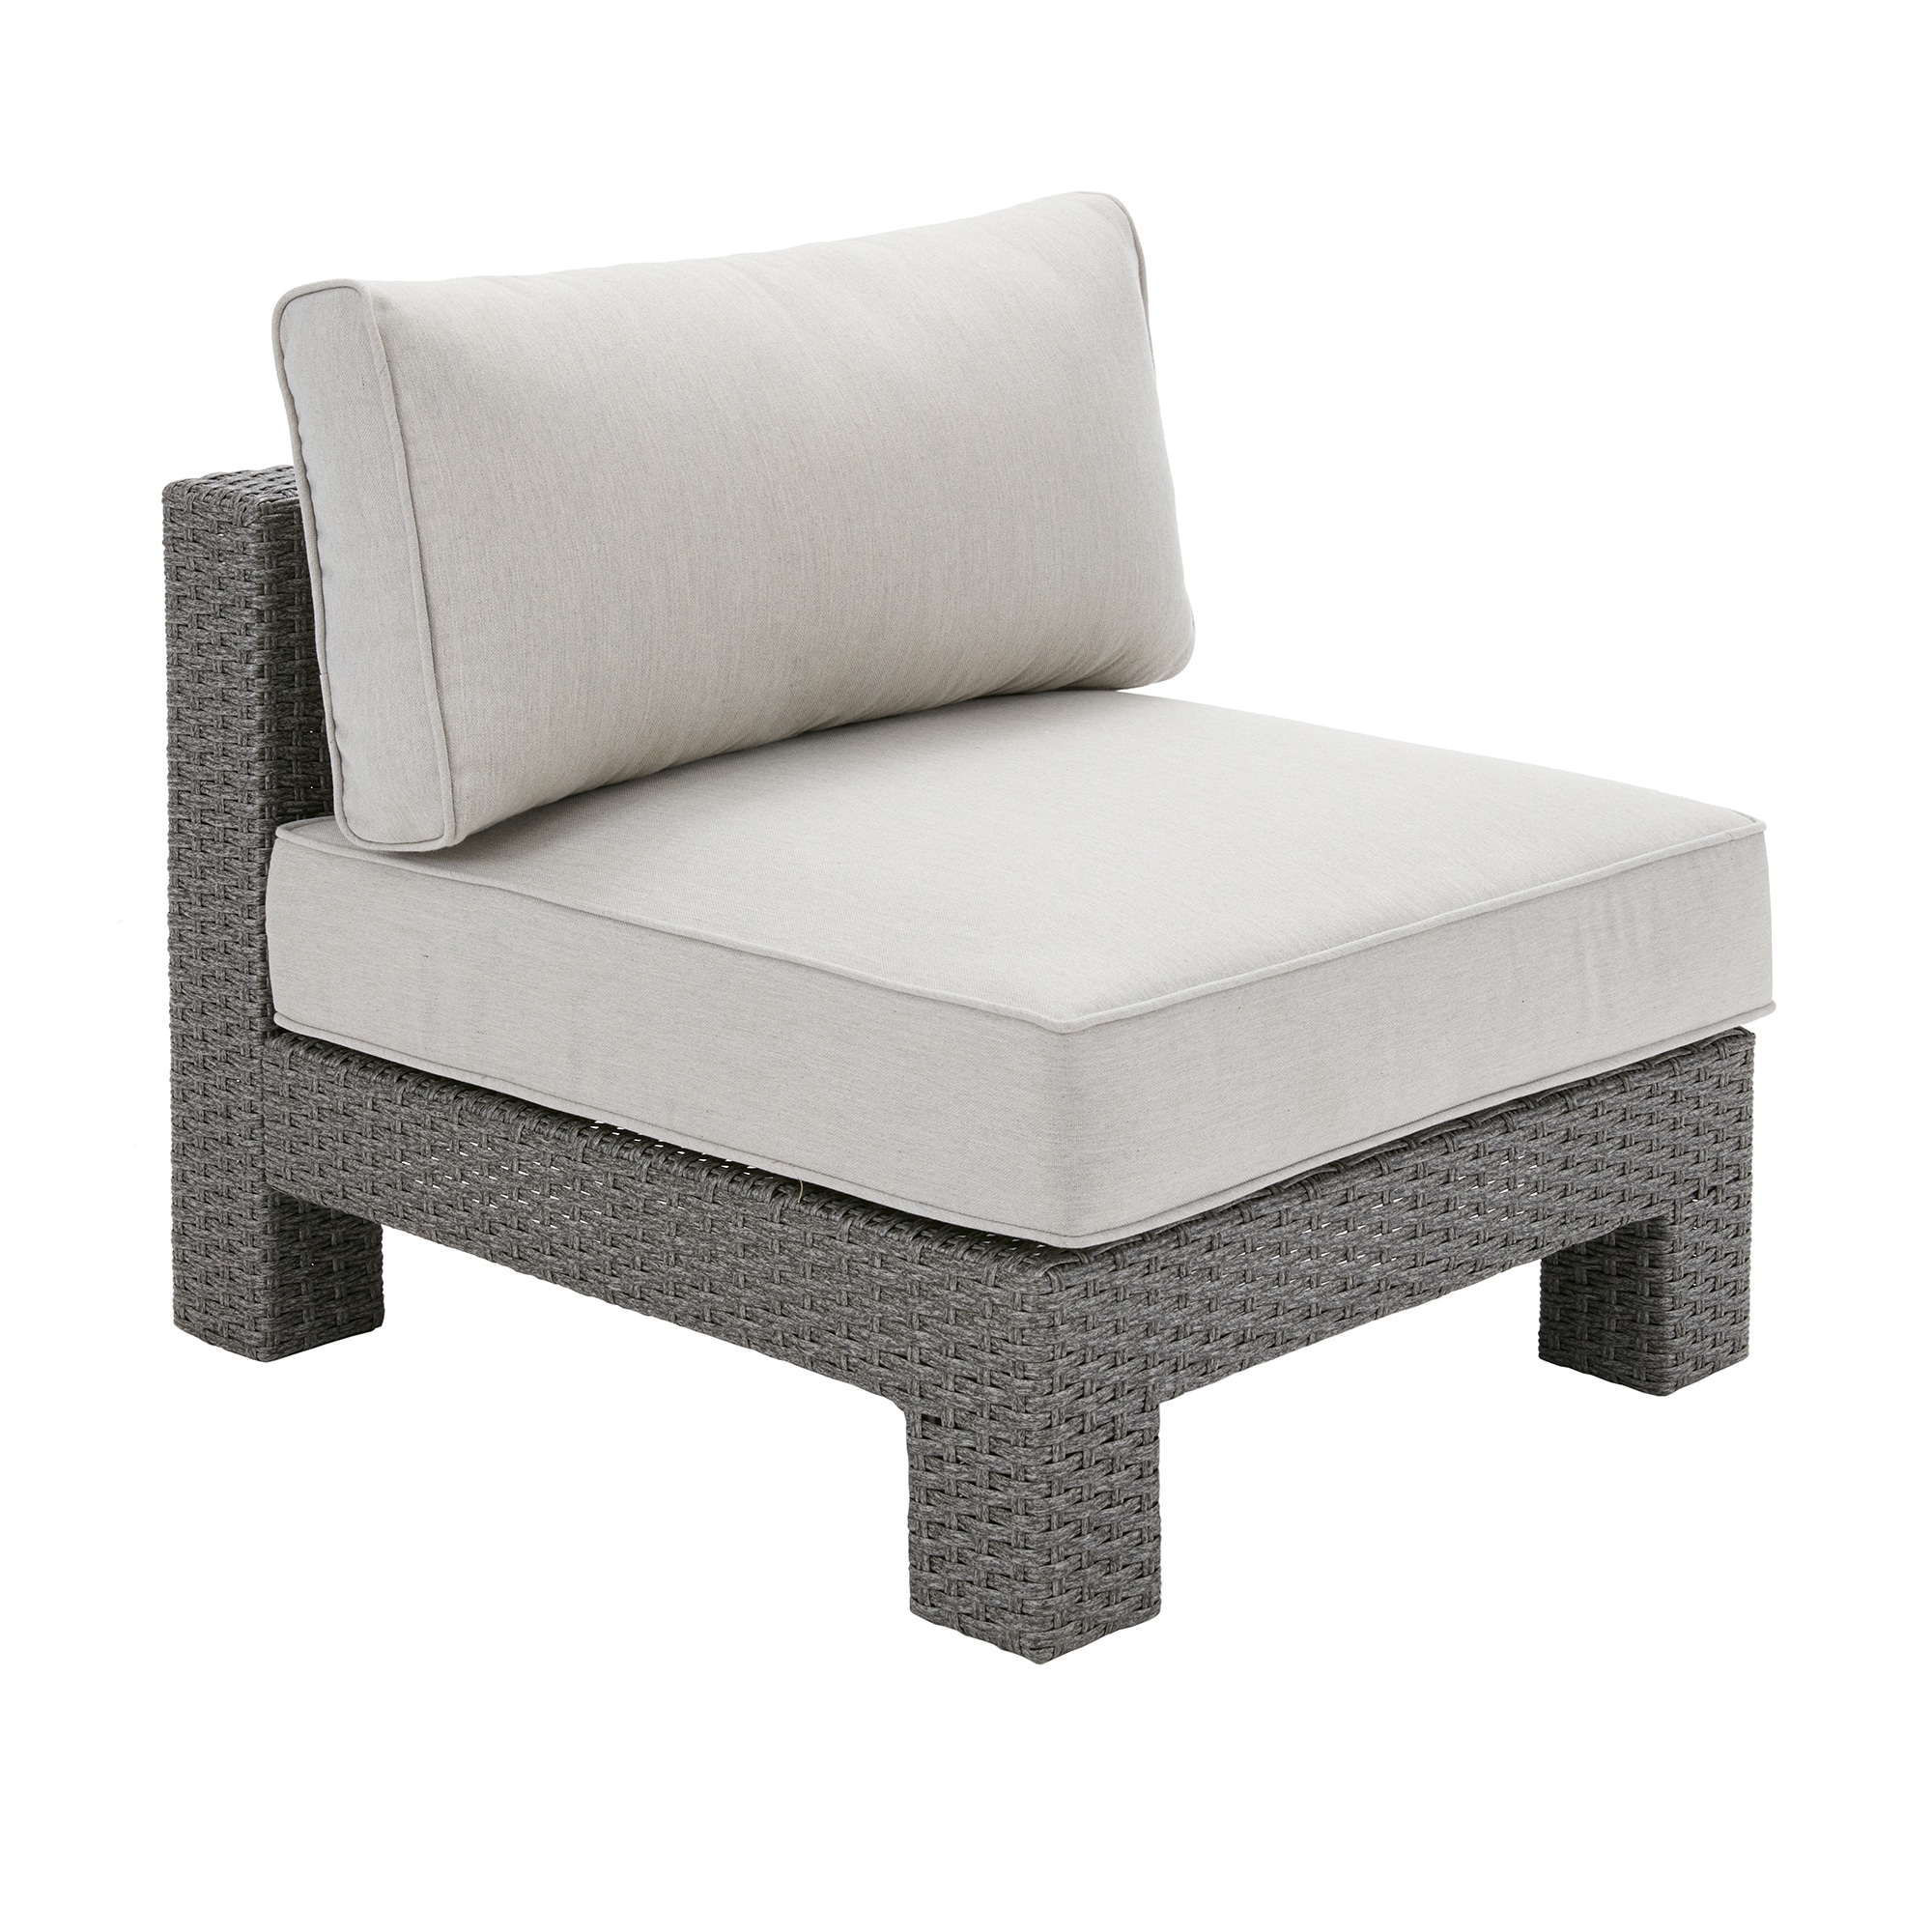 pillow for aifaresidency madison your of futons com wi walmart designs dhp top futon bed allegra amazing sofa